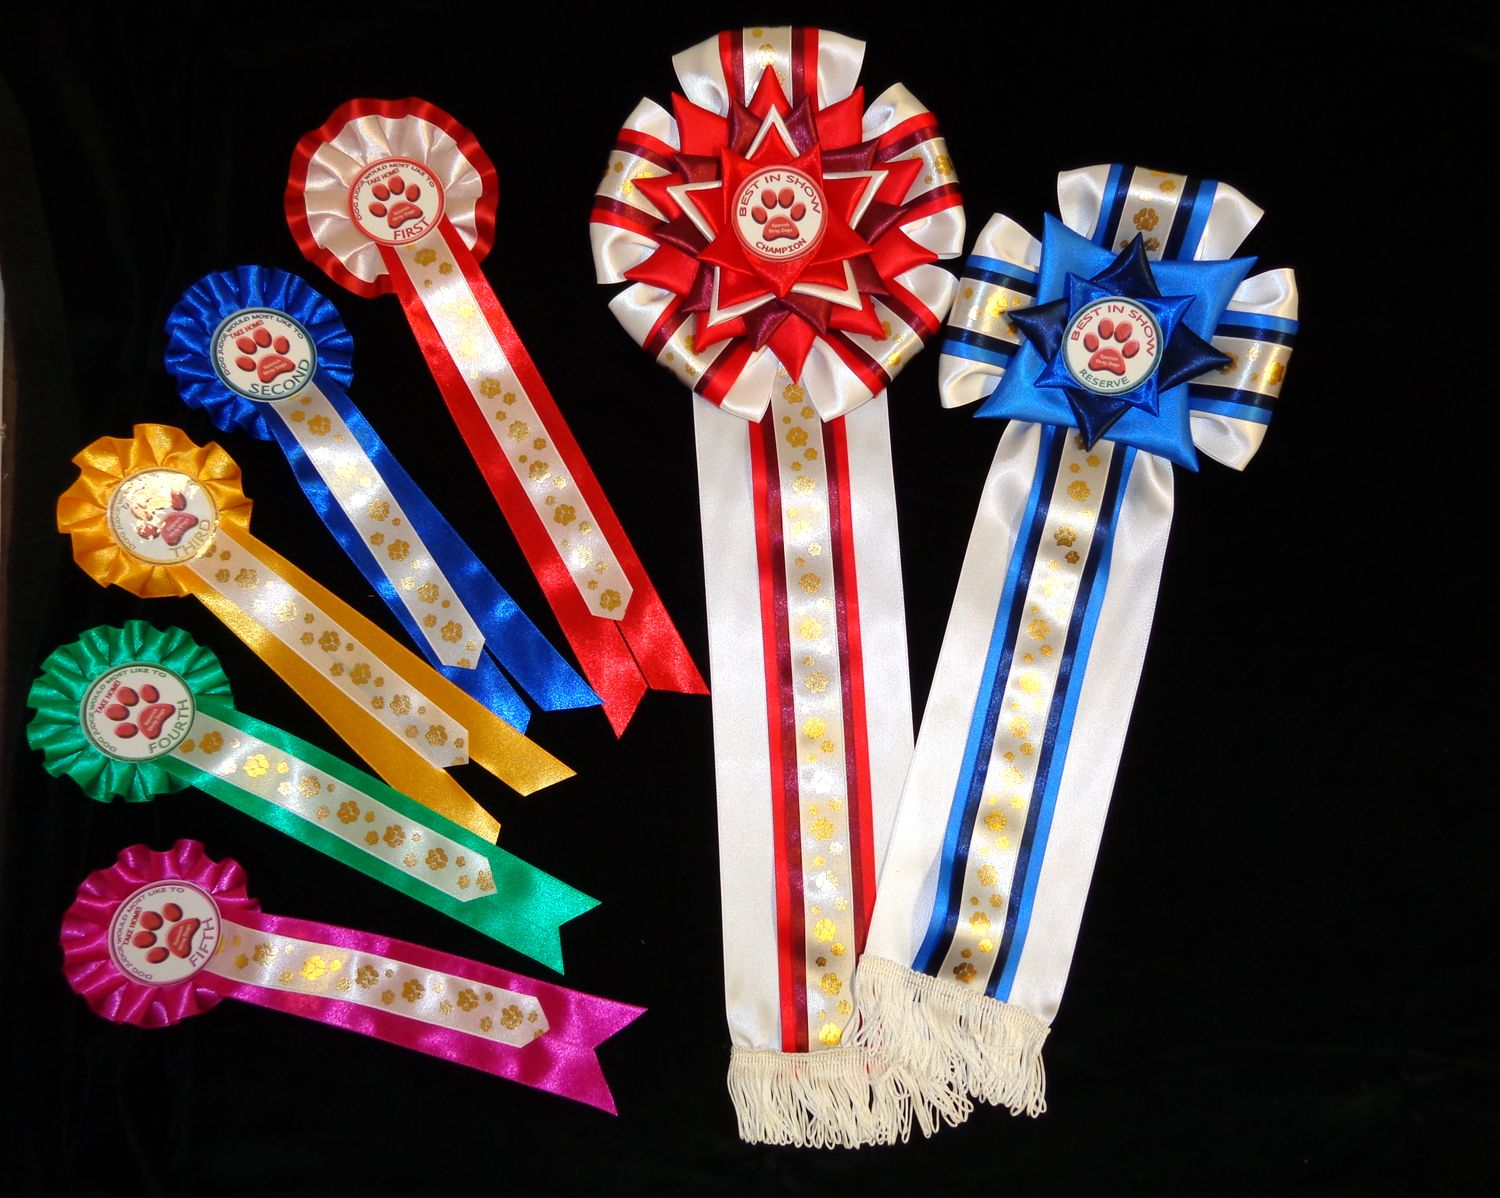 Dog Show Rosettes with Best In Show Rosettes! See the size of these